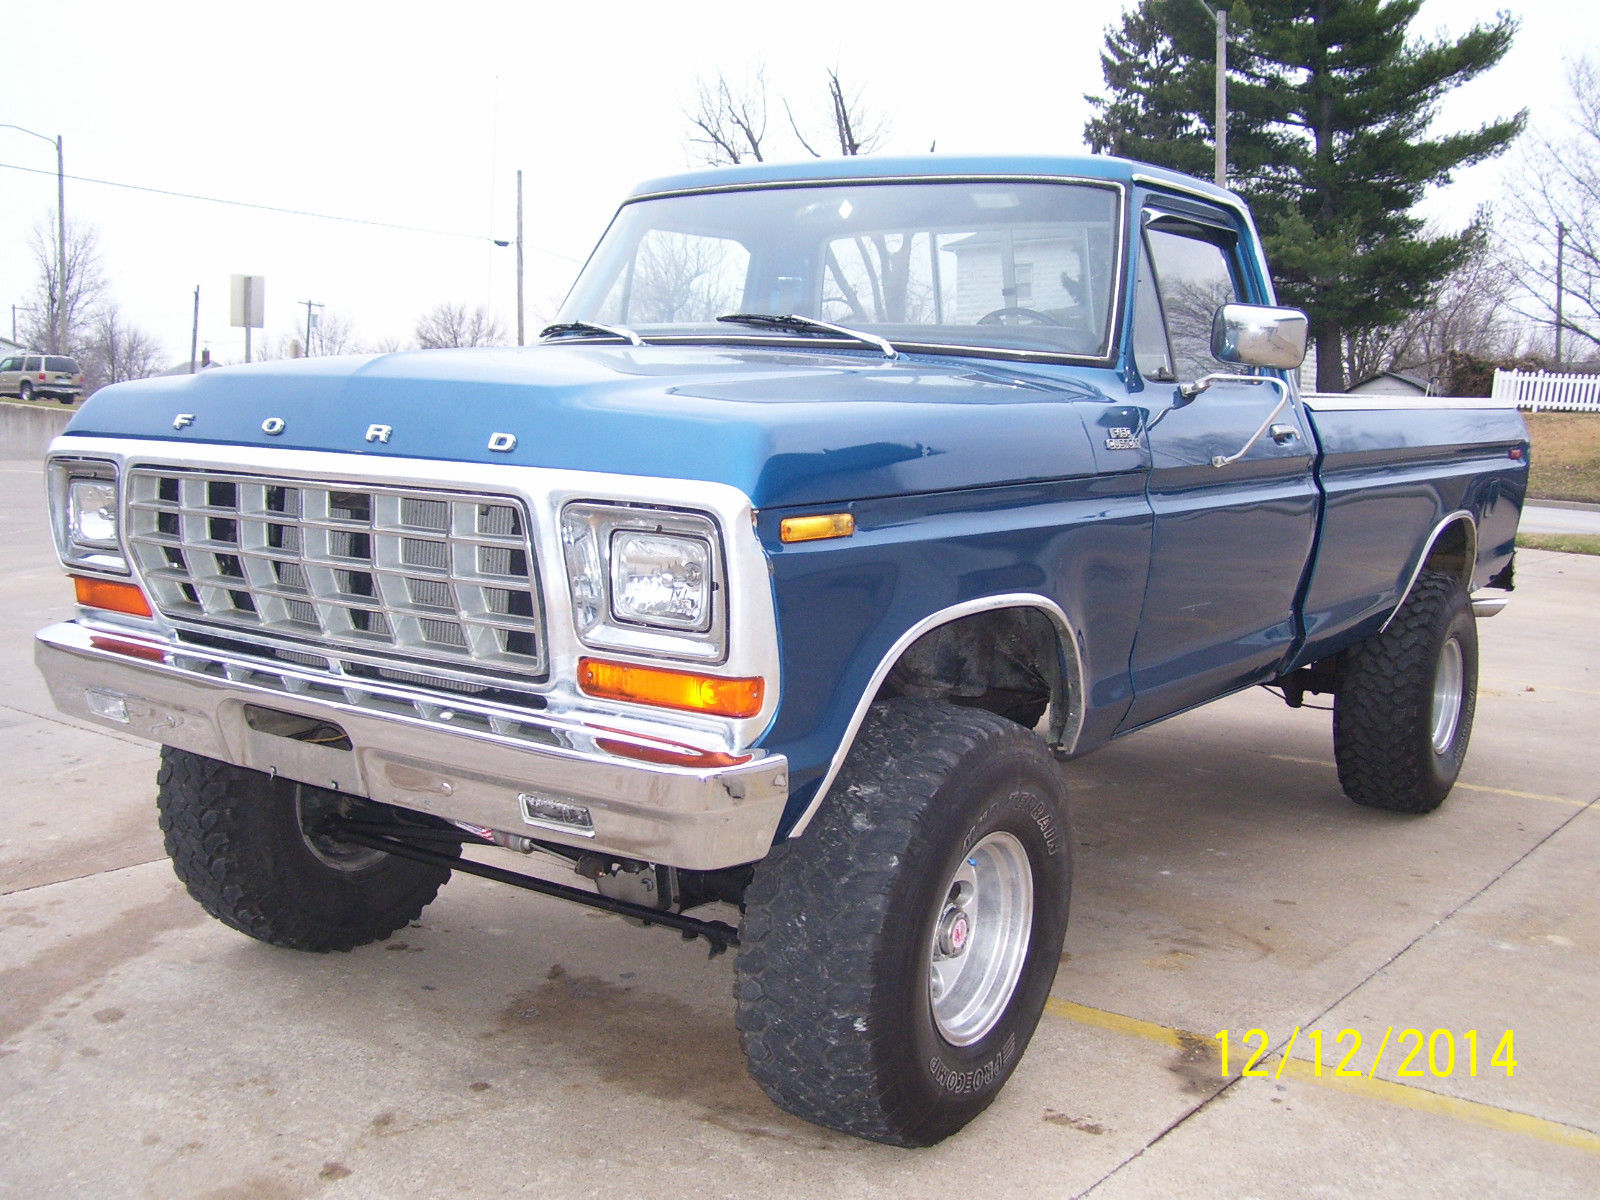 1978 ford f 150 custom 460 v8 4 speed 4x4 classic ford f 150 1978 for sale. Black Bedroom Furniture Sets. Home Design Ideas